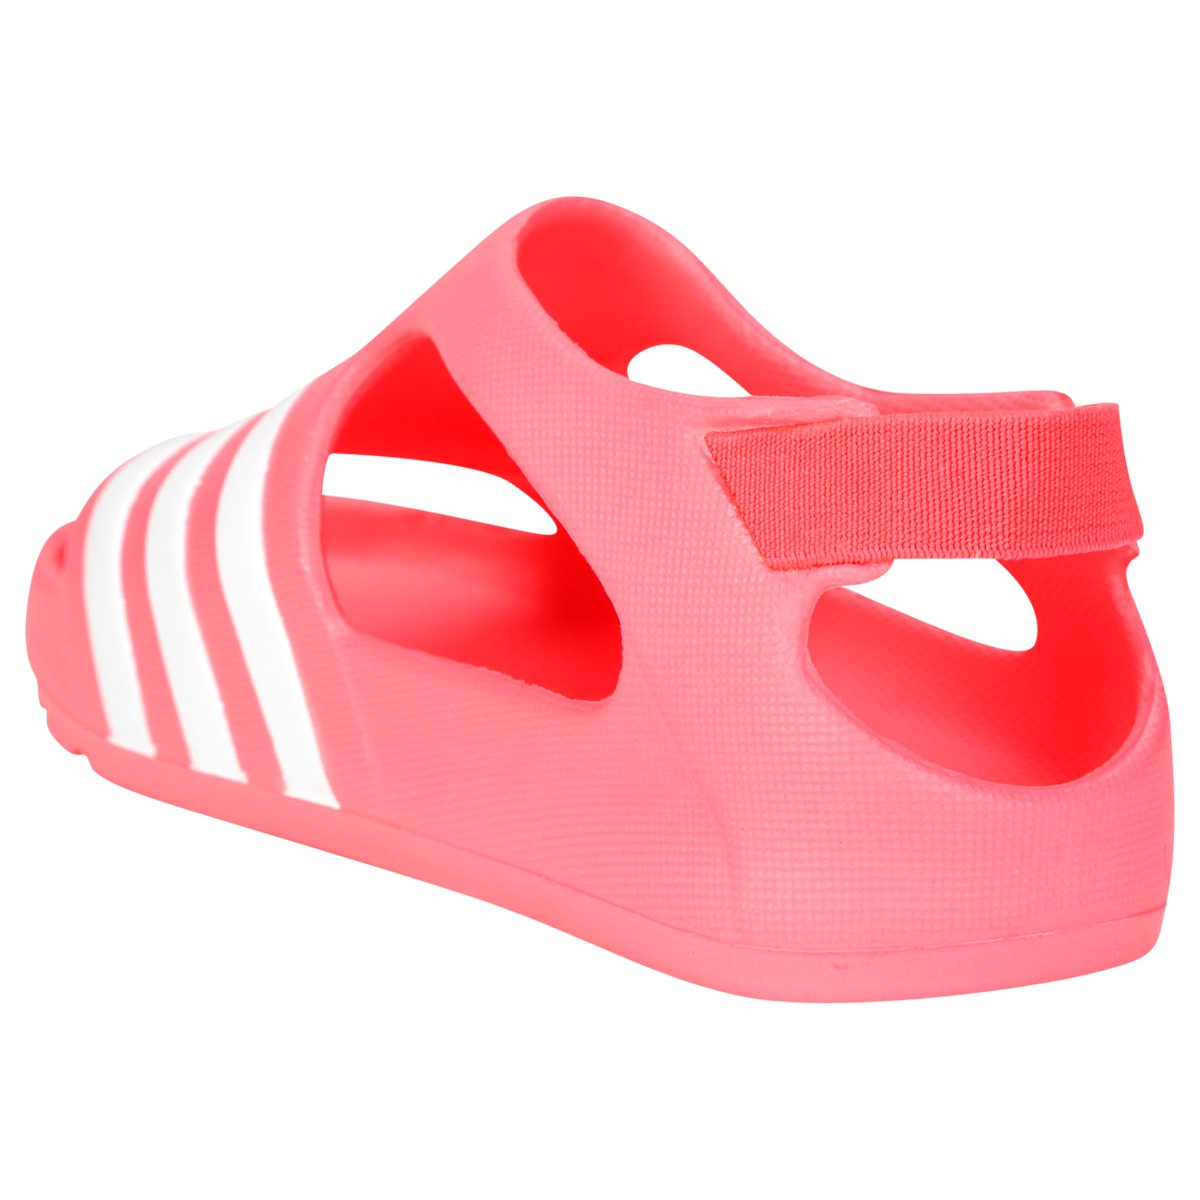 d74d2dec686 ... Sandália Adidas Adilette Play 1 Infantil - Rosa+Branco. COLLECTION   OFERTAS  OPEC